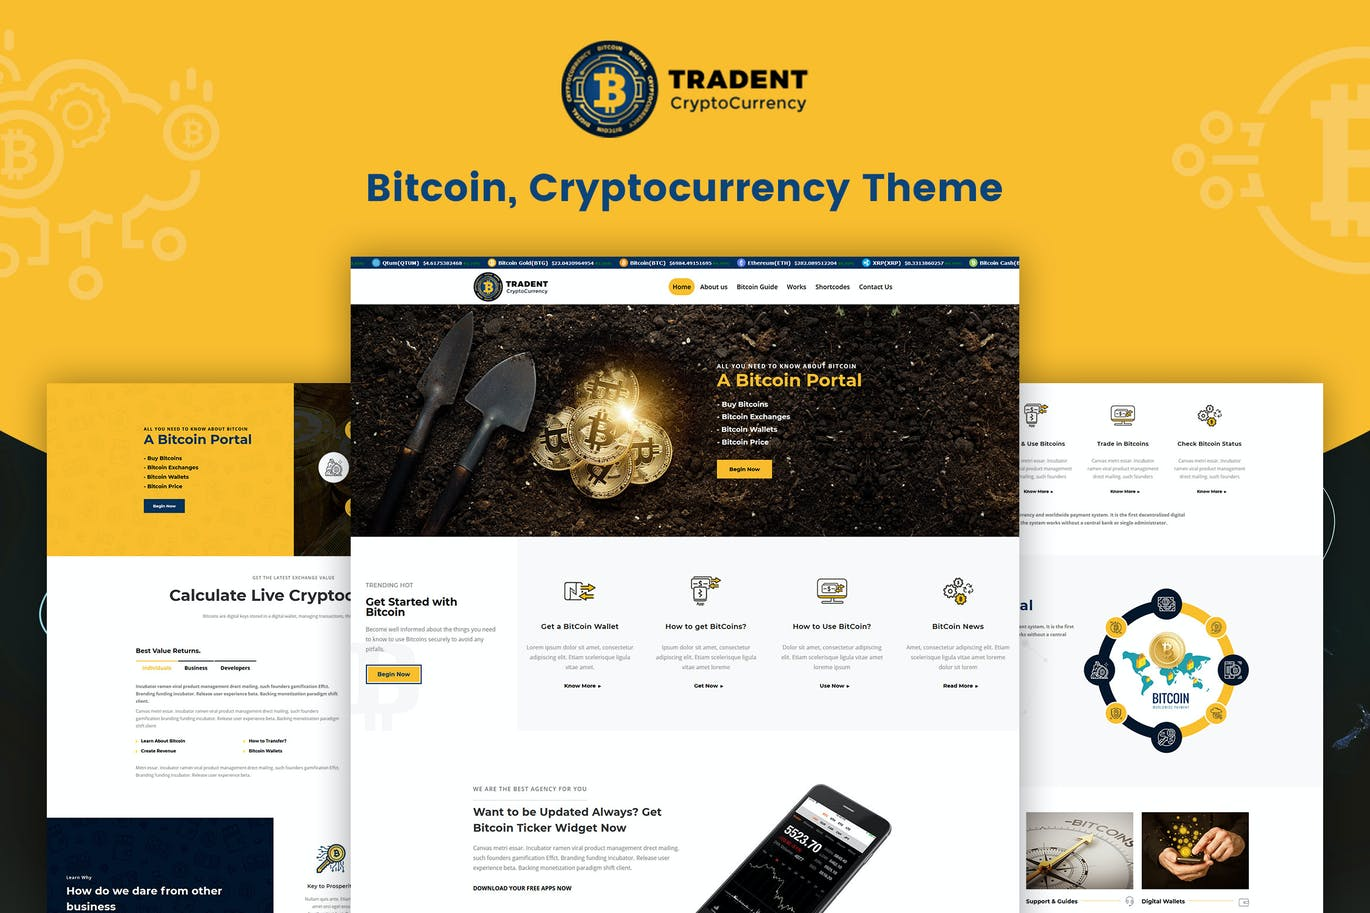 Tradent Cryptocurrency - Bitcoin, Crypto Theme - Premium creative assets